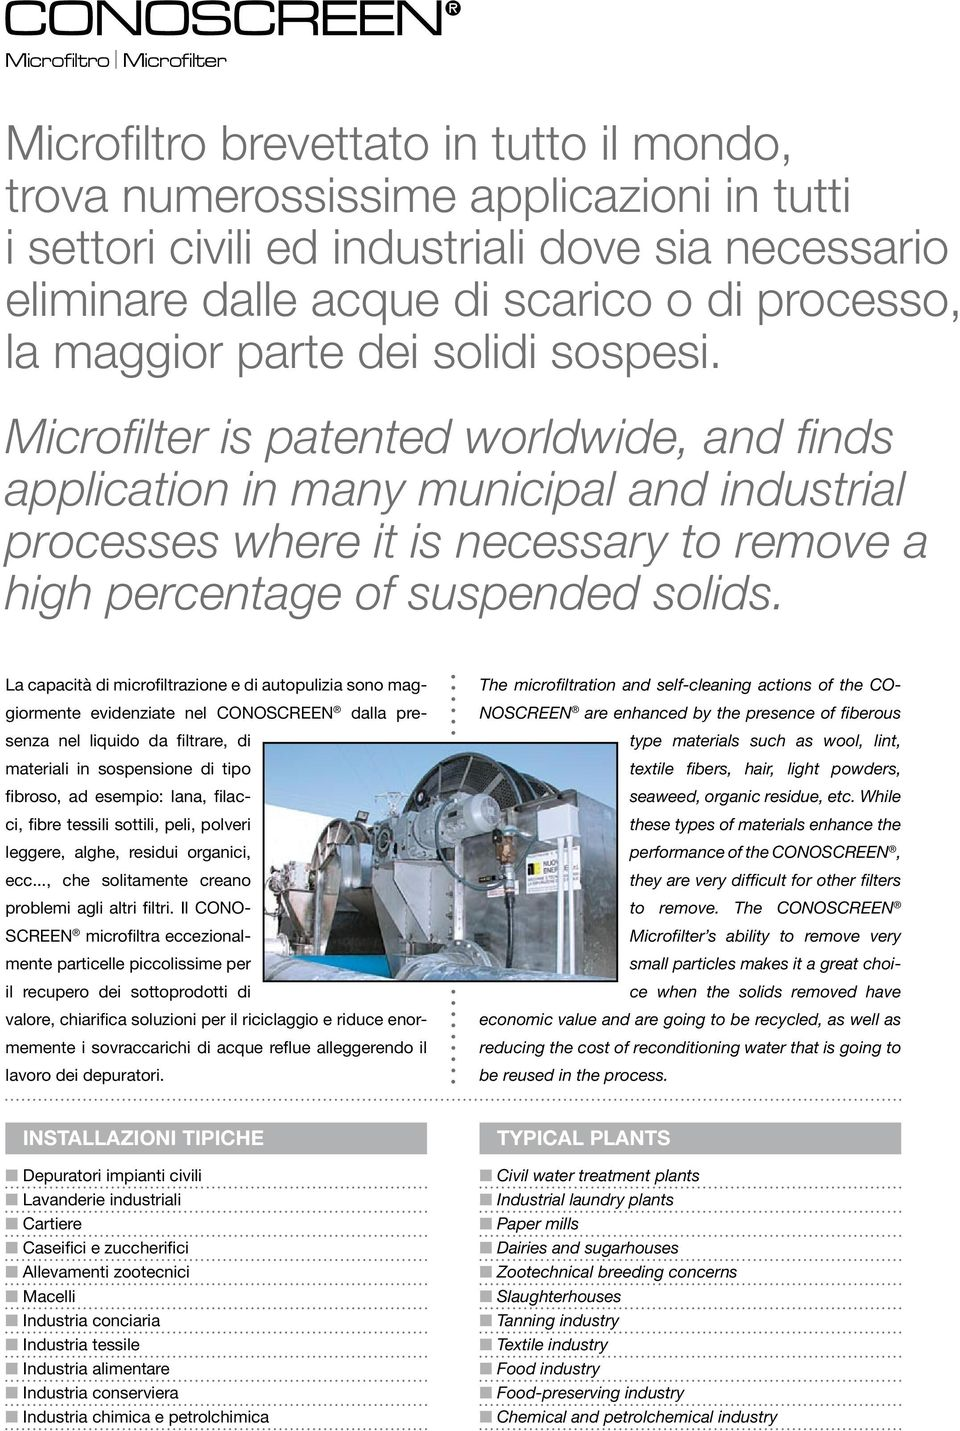 Microfilter is patented worldwide, and finds application in many municipal and industrial processes where it is necessary to remove a high percentage of suspended solids.